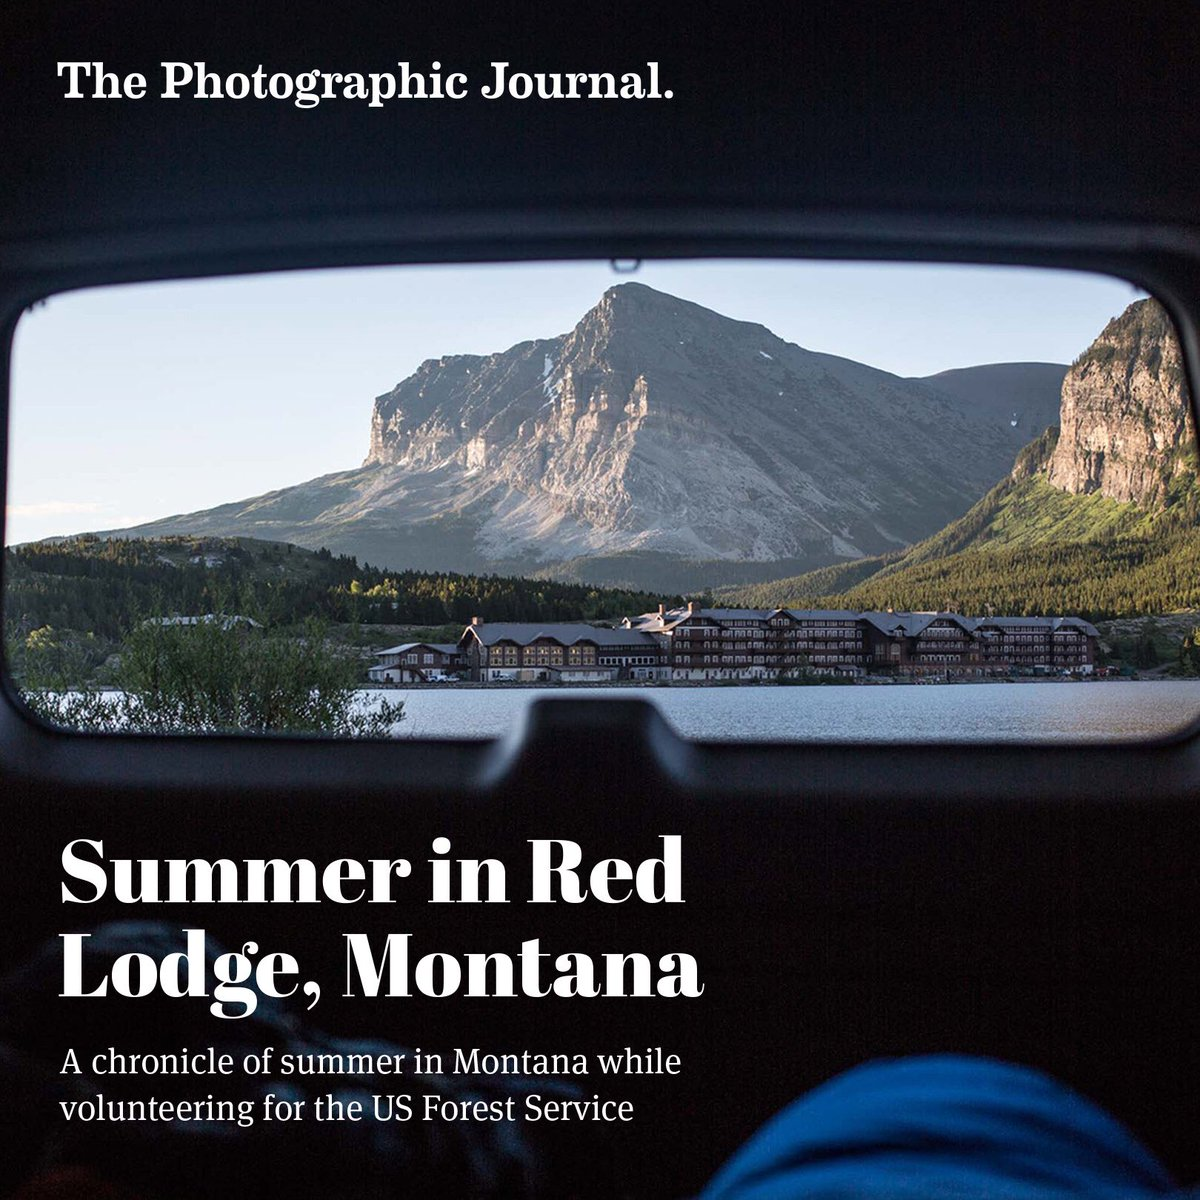 photographic journal tpj  escape to montana our new essay from ethan fichtner on the site now thephotographicjournal com essays summer in red lodge montana